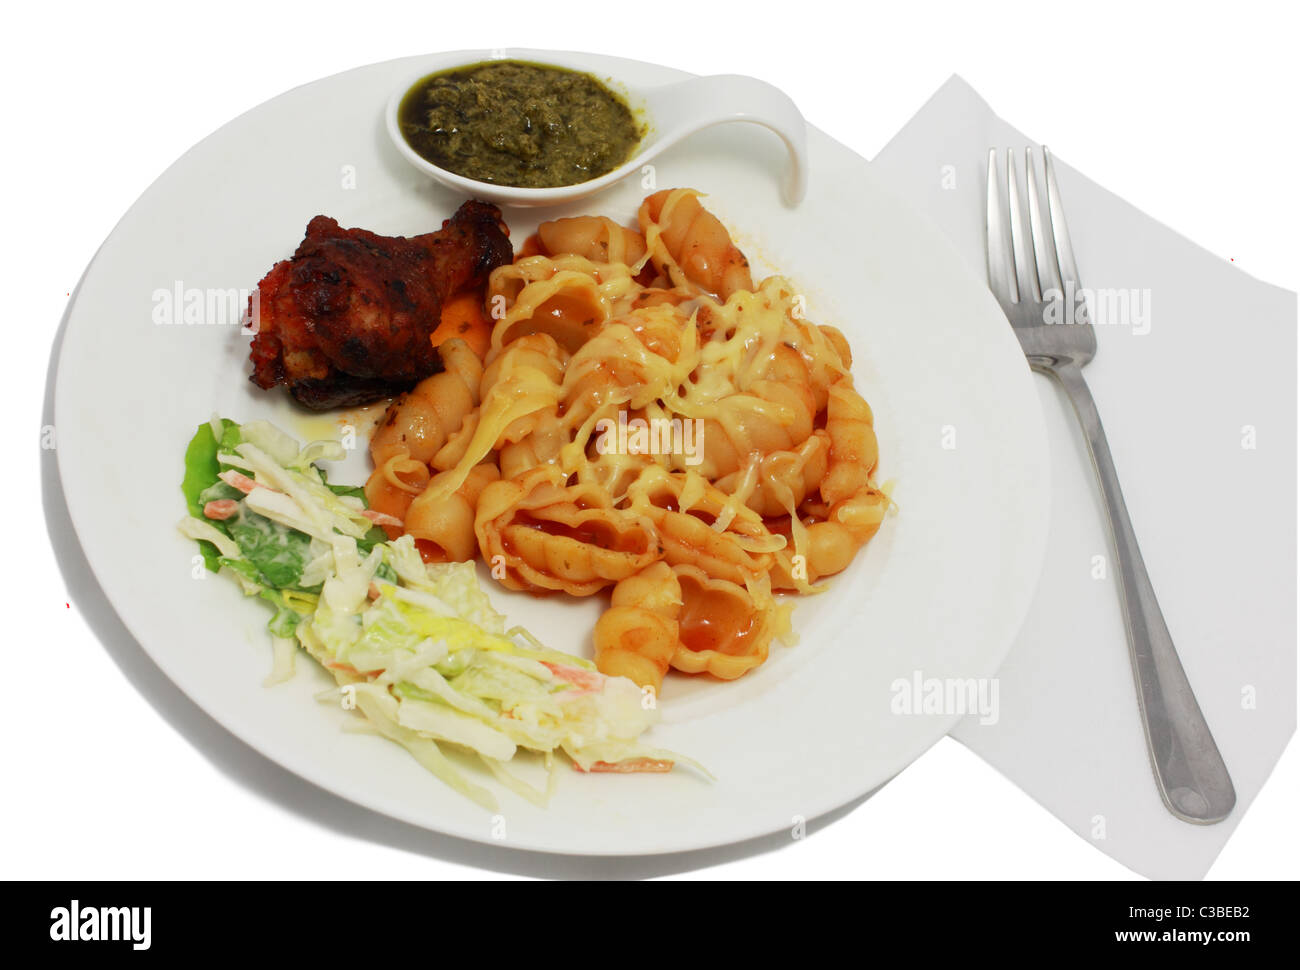 pasta with souse and cheese and fried chicken - Stock Image